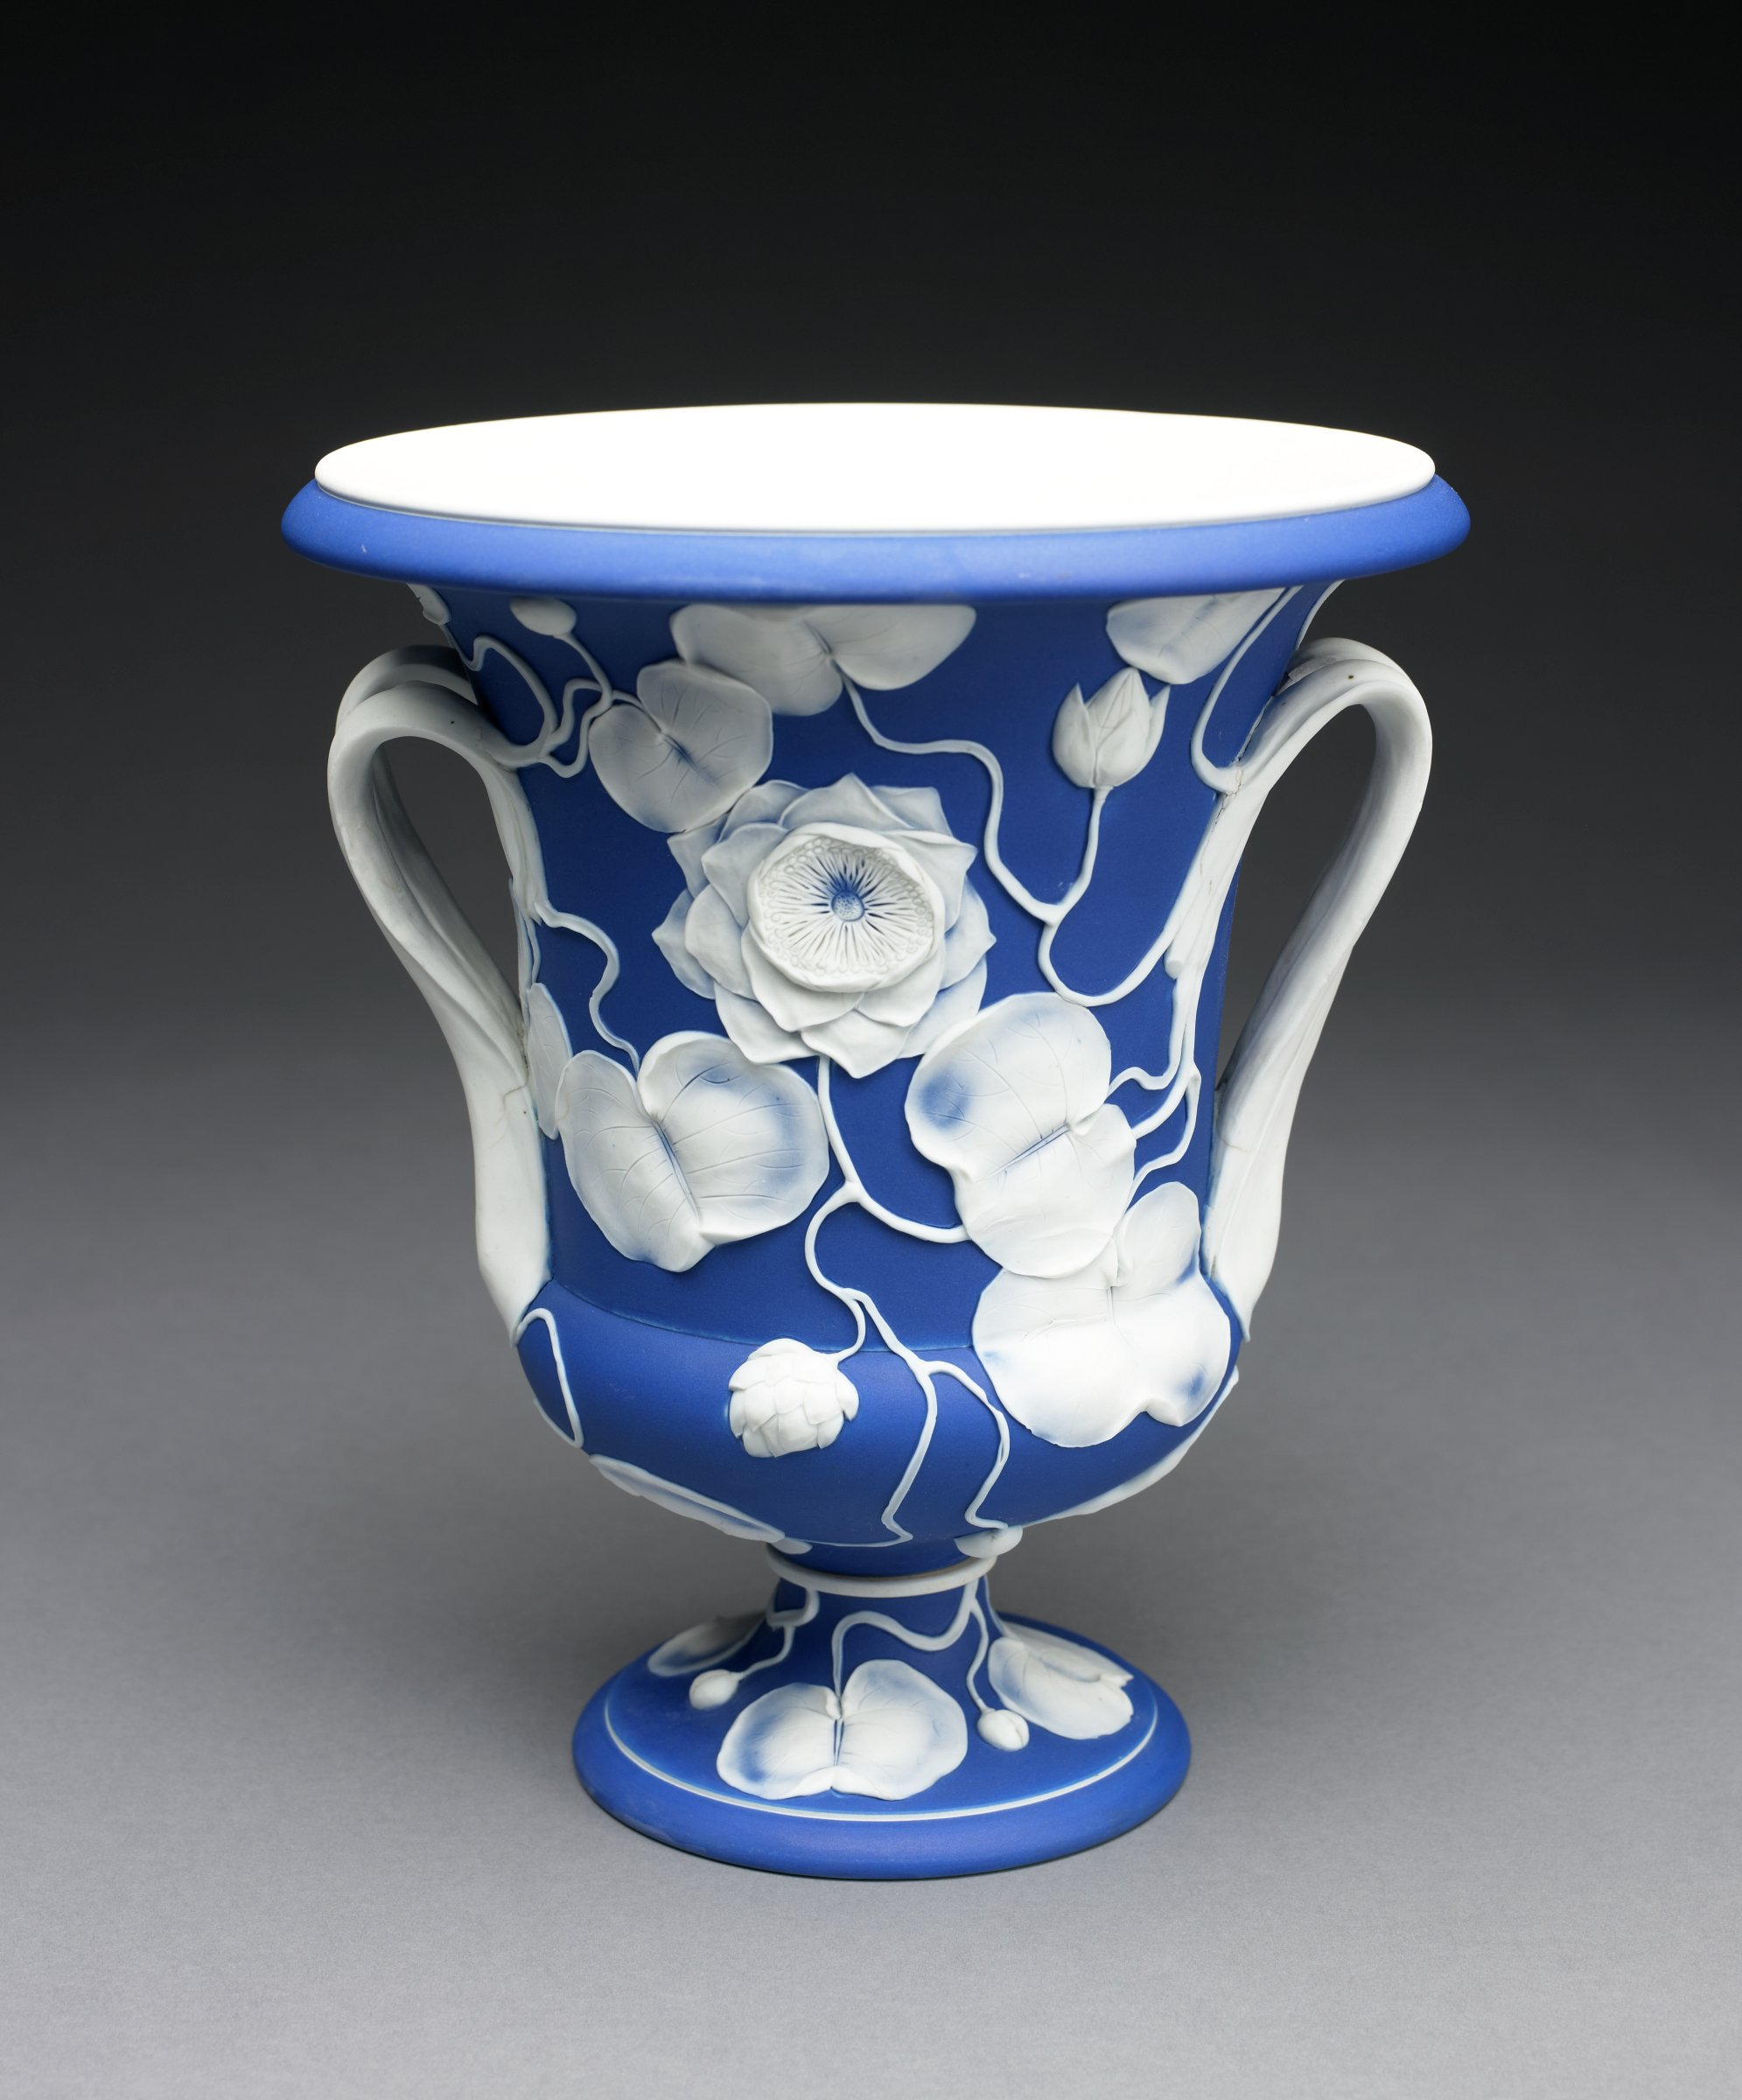 Large white jasper wine cooler with dark blue jasper dip and white relief decoration, urn shaped with two, thick elongated ear-shaped handles that extend from the lower body and loop up and around to become leafy vines, with round foot and flared lip, the body and foot decorated all-over with water lily motifs, leafy elements, flowers and buds, highlighted with shading, the interior white.